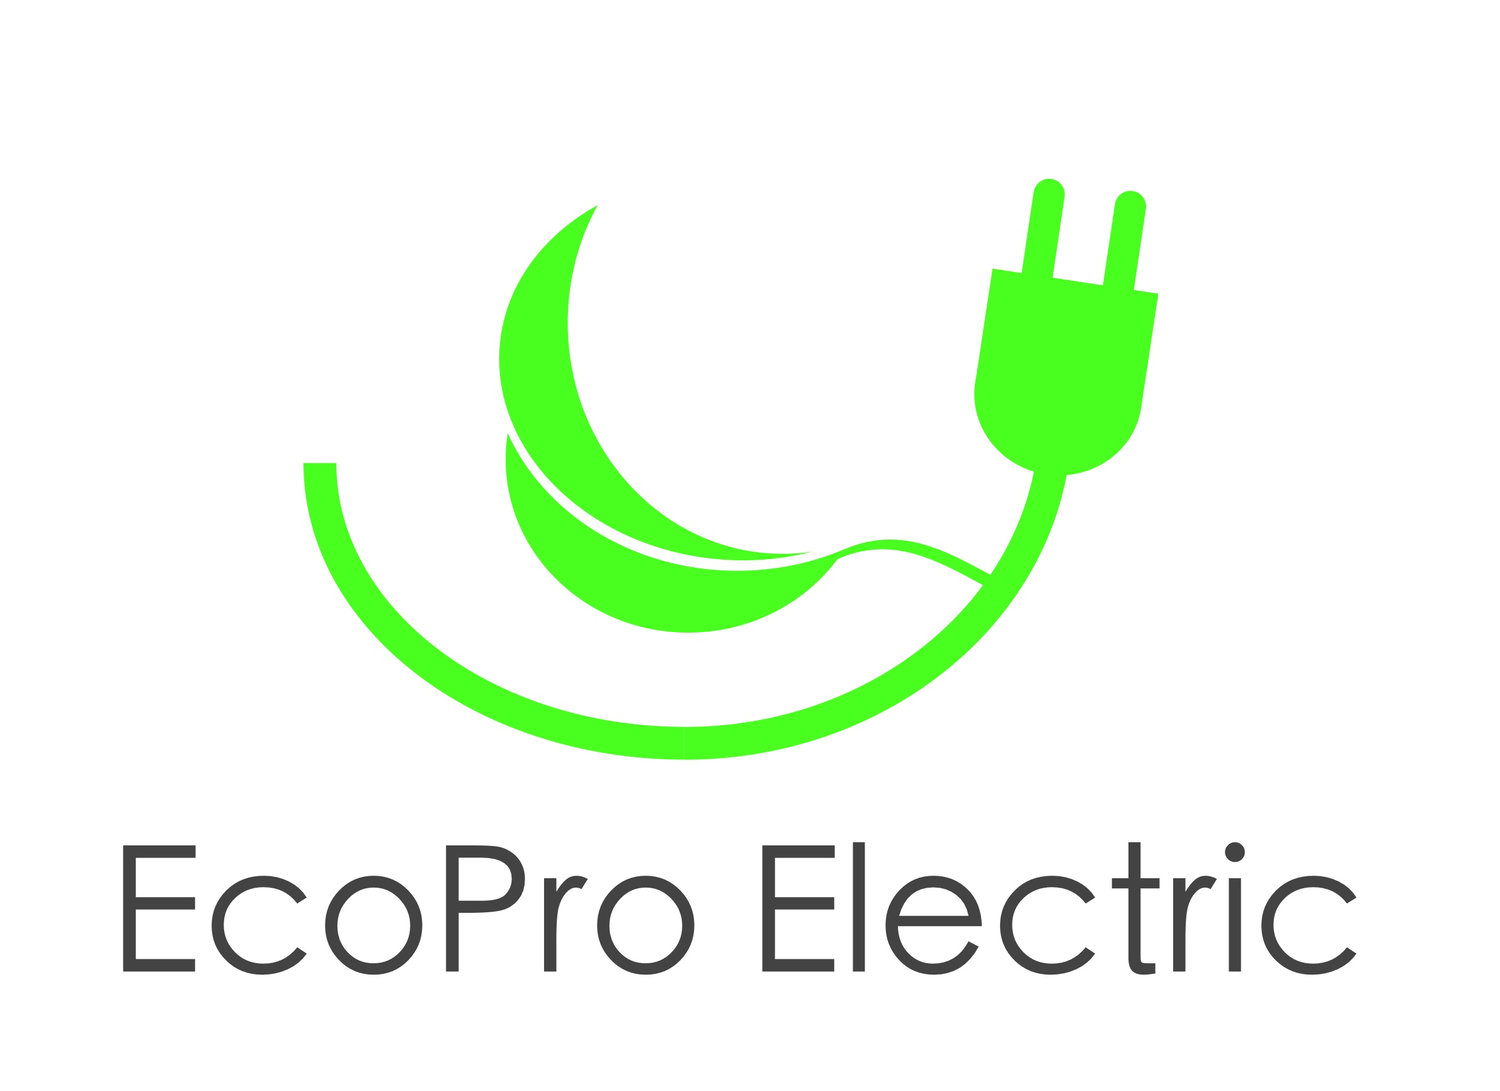 EcoPro Electric